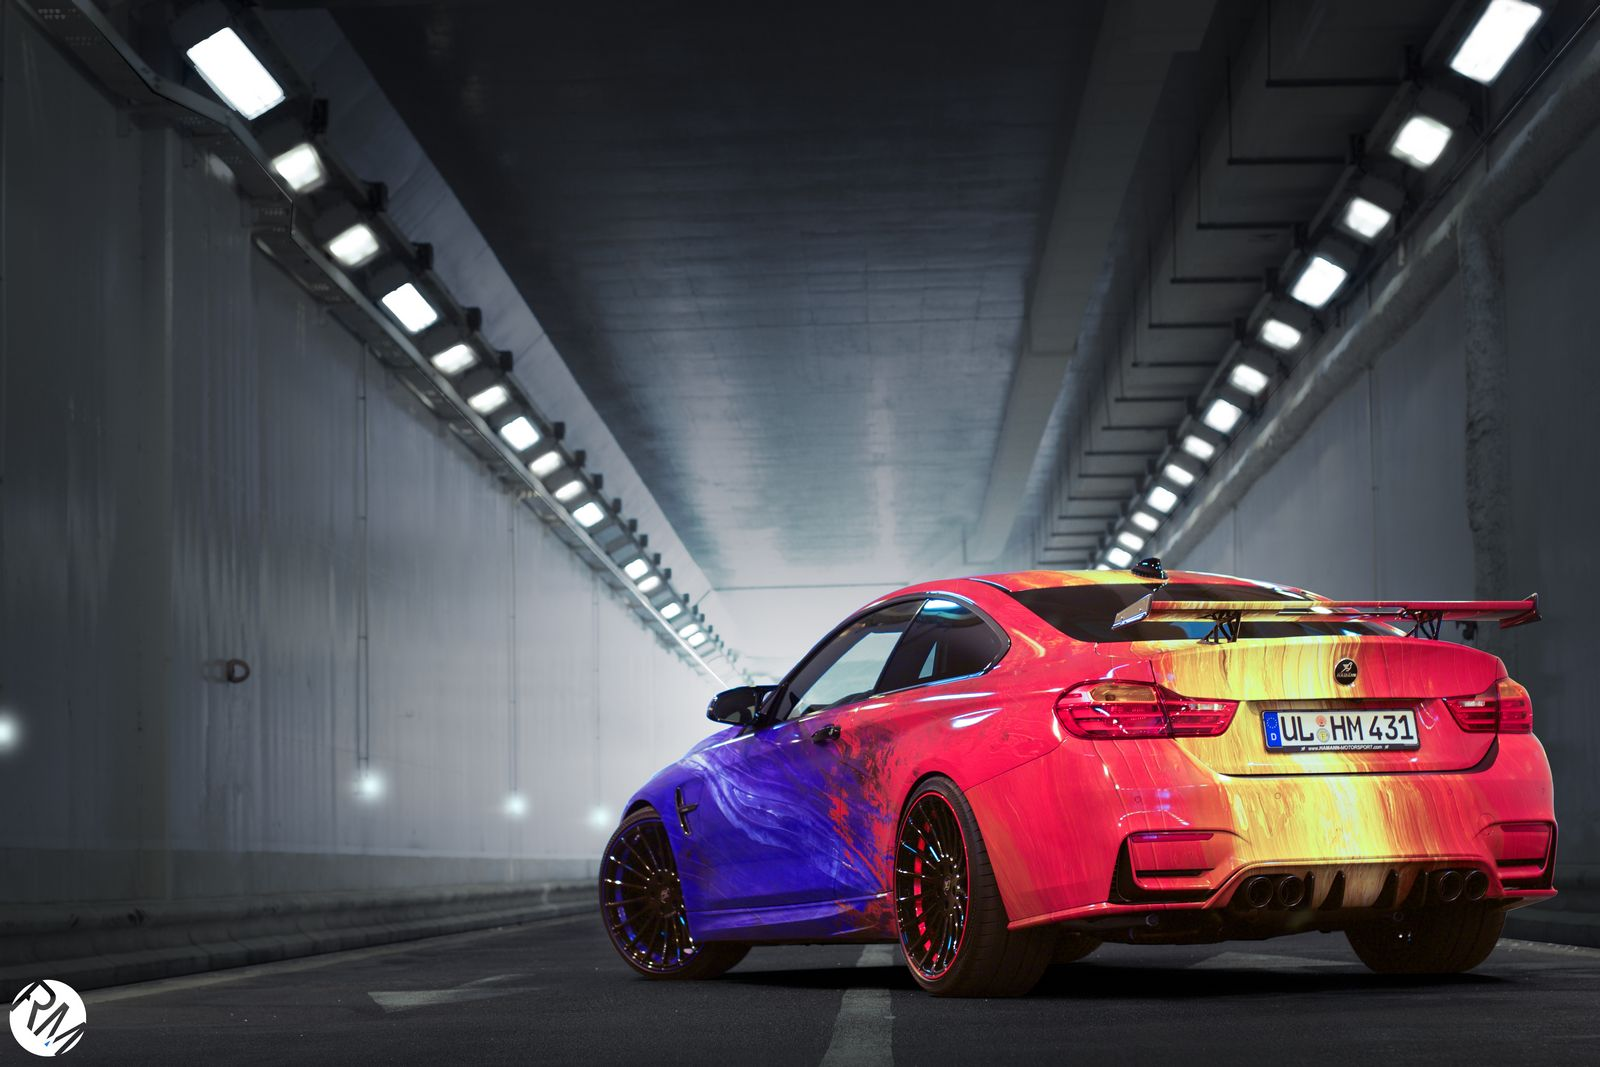 BMW M4 Art Car